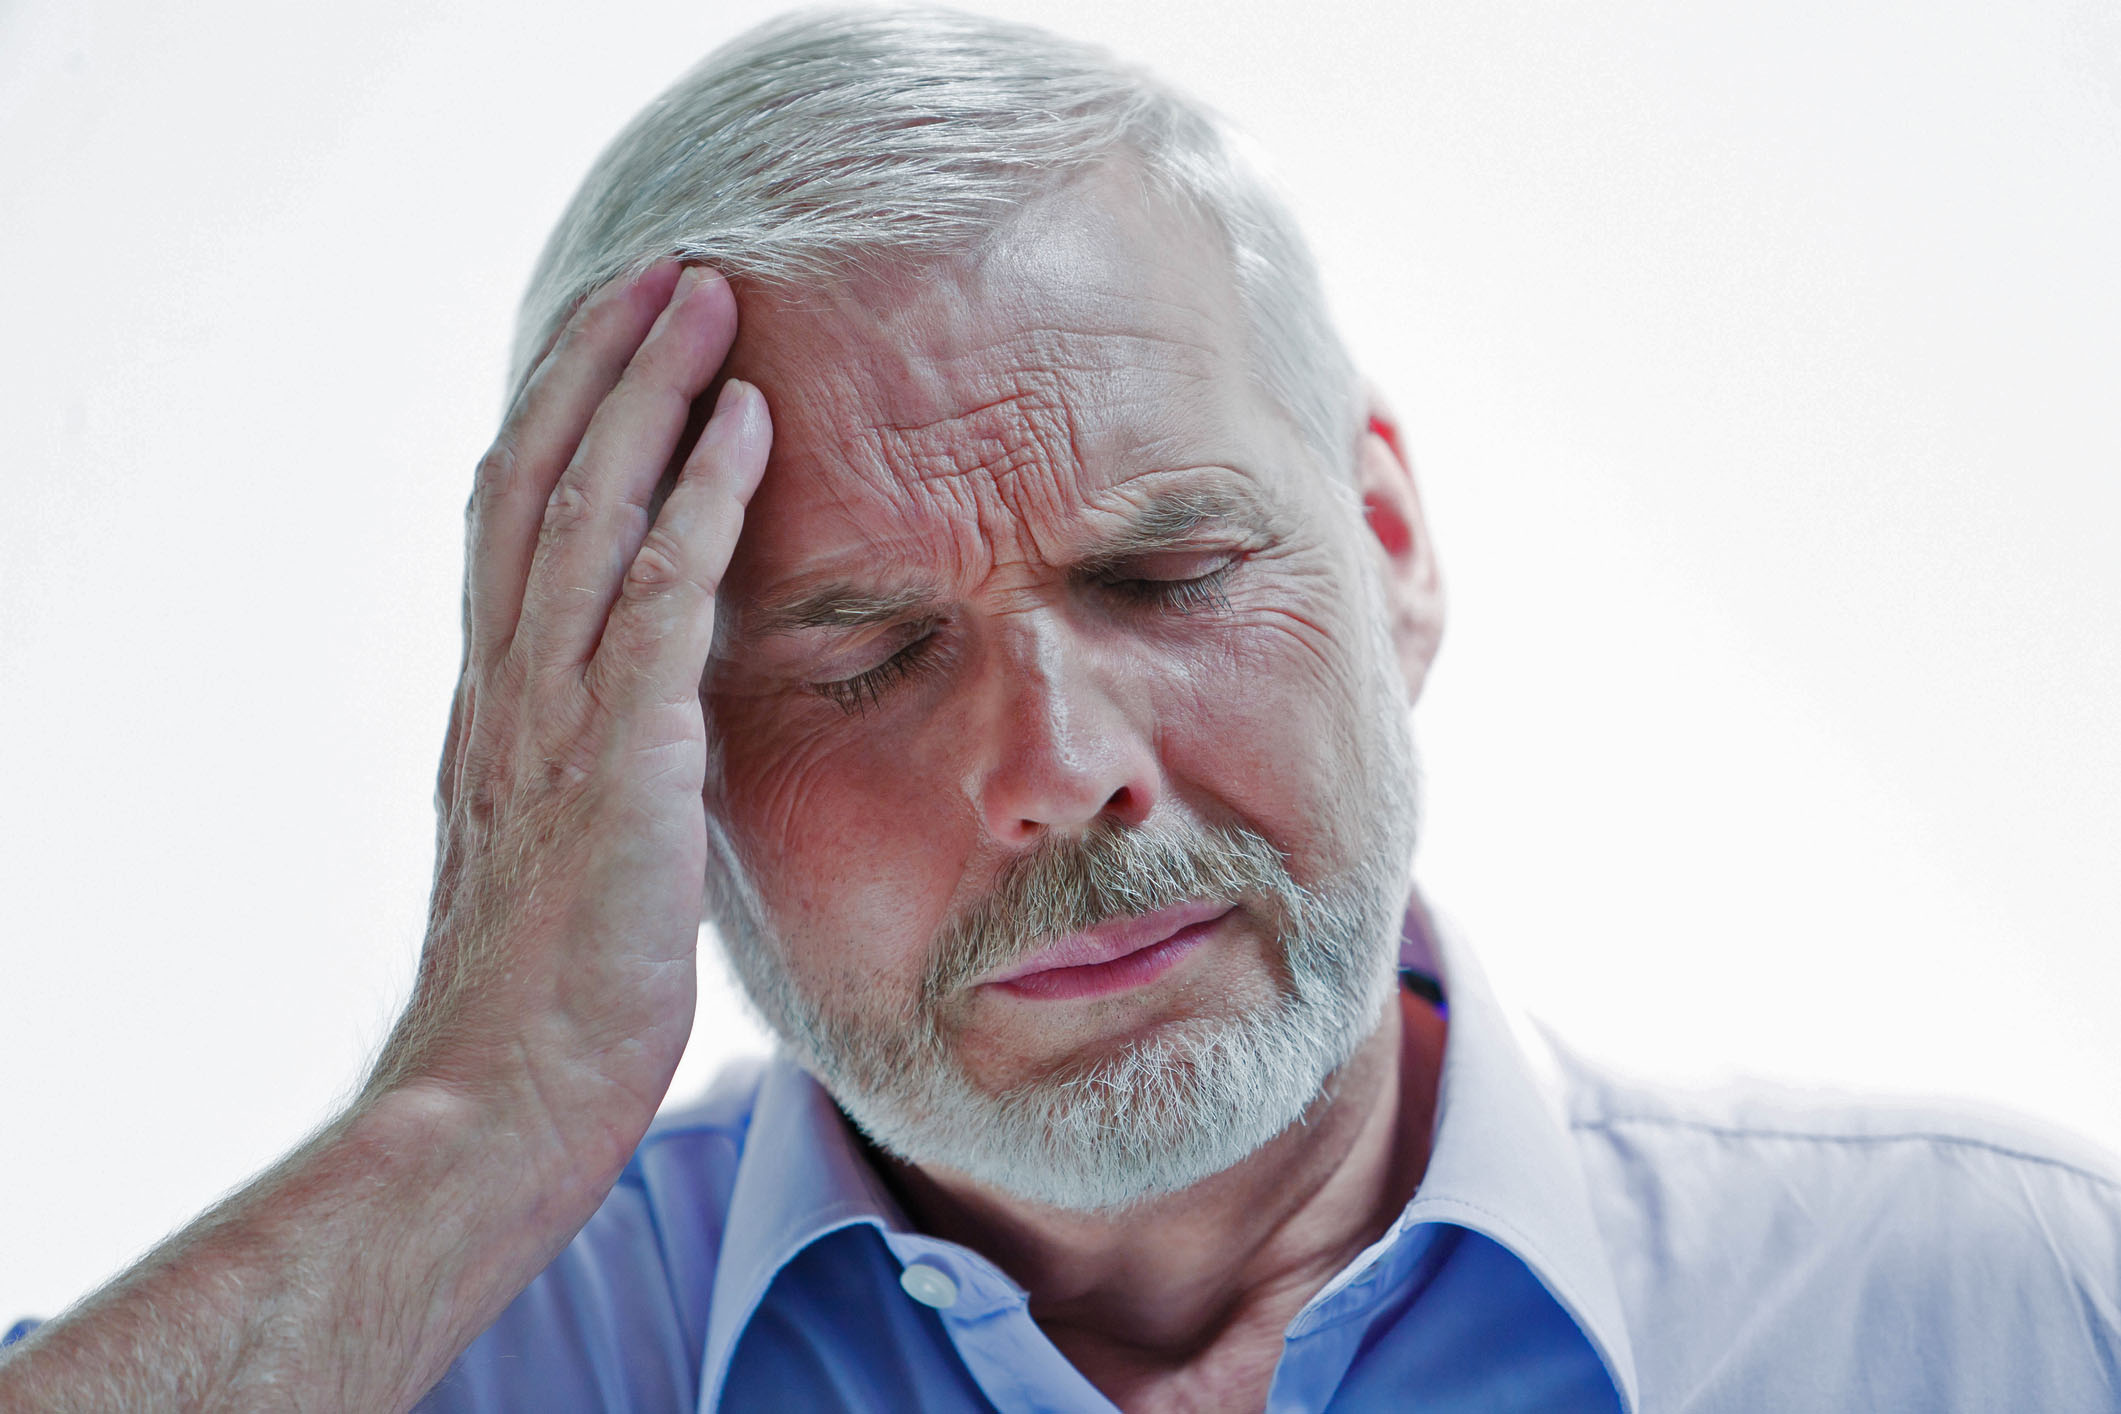 Man suffering with a Migraine headache